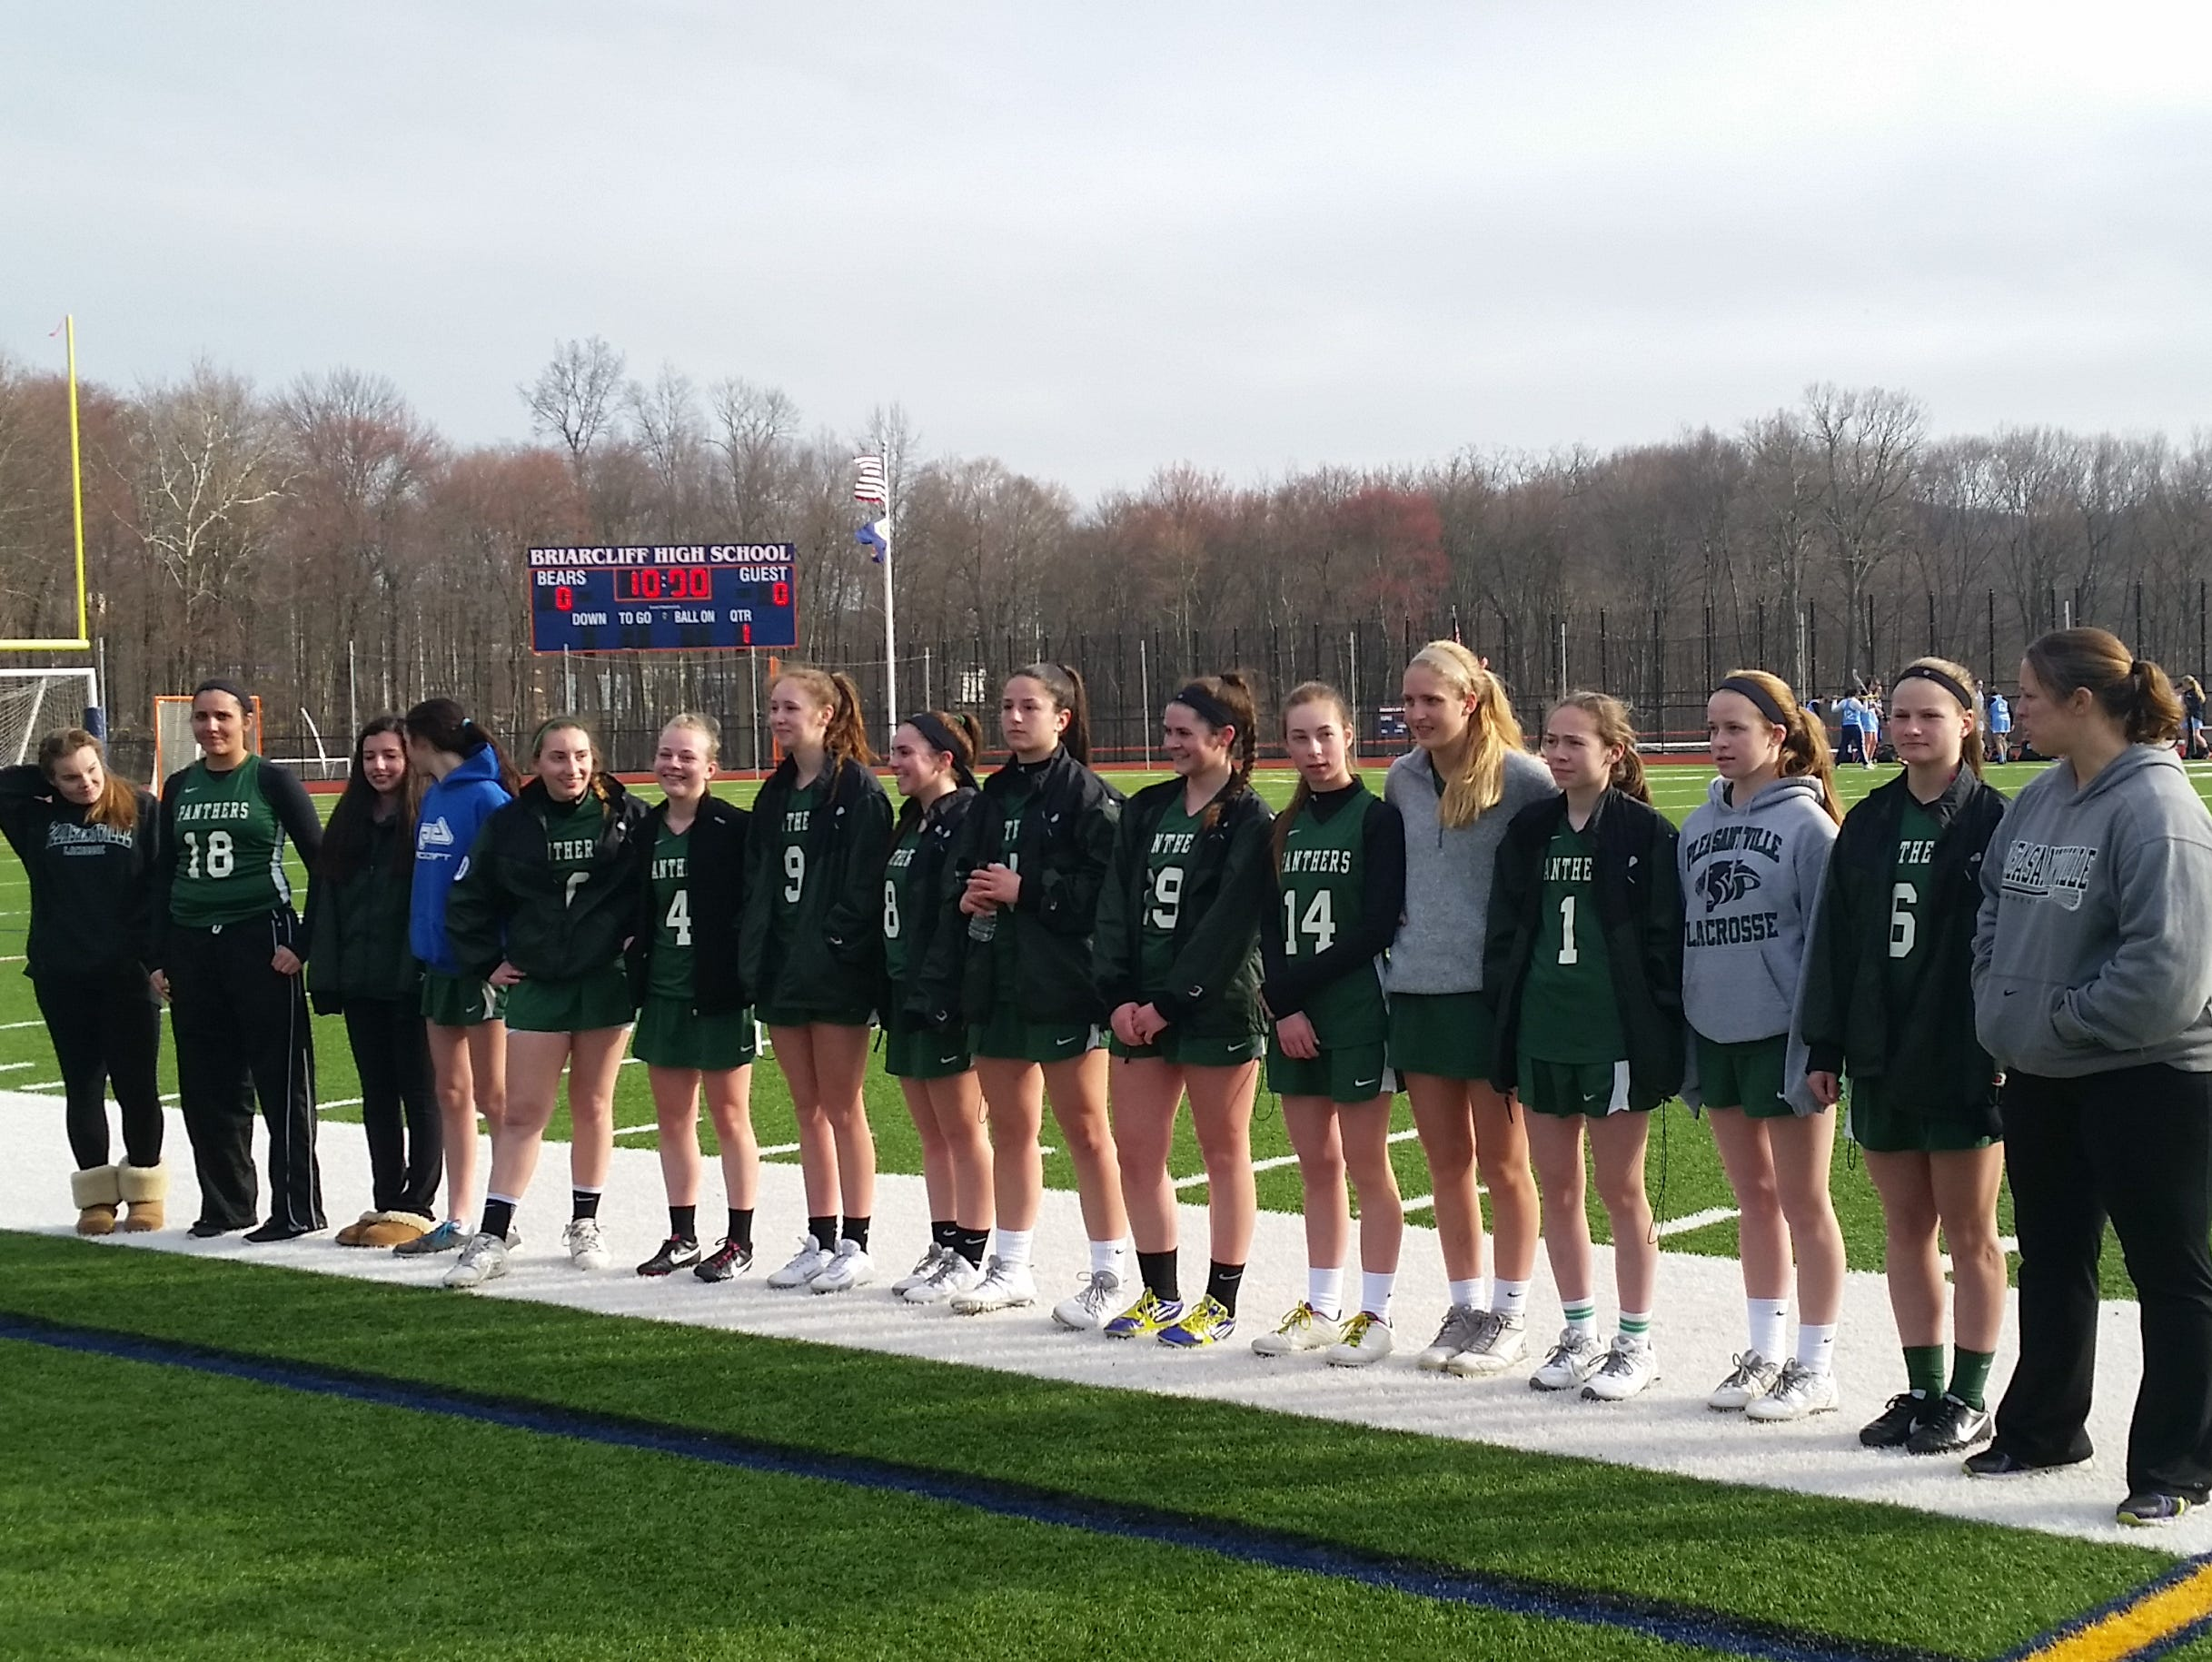 Pleasantville's girls lacrosse team waits to hear the all-tournament team selections after the team's win over Valhalla in the Mount Pleasant Cup consolation game at Briarcliff High School on Thursday, March 24th, 2016.